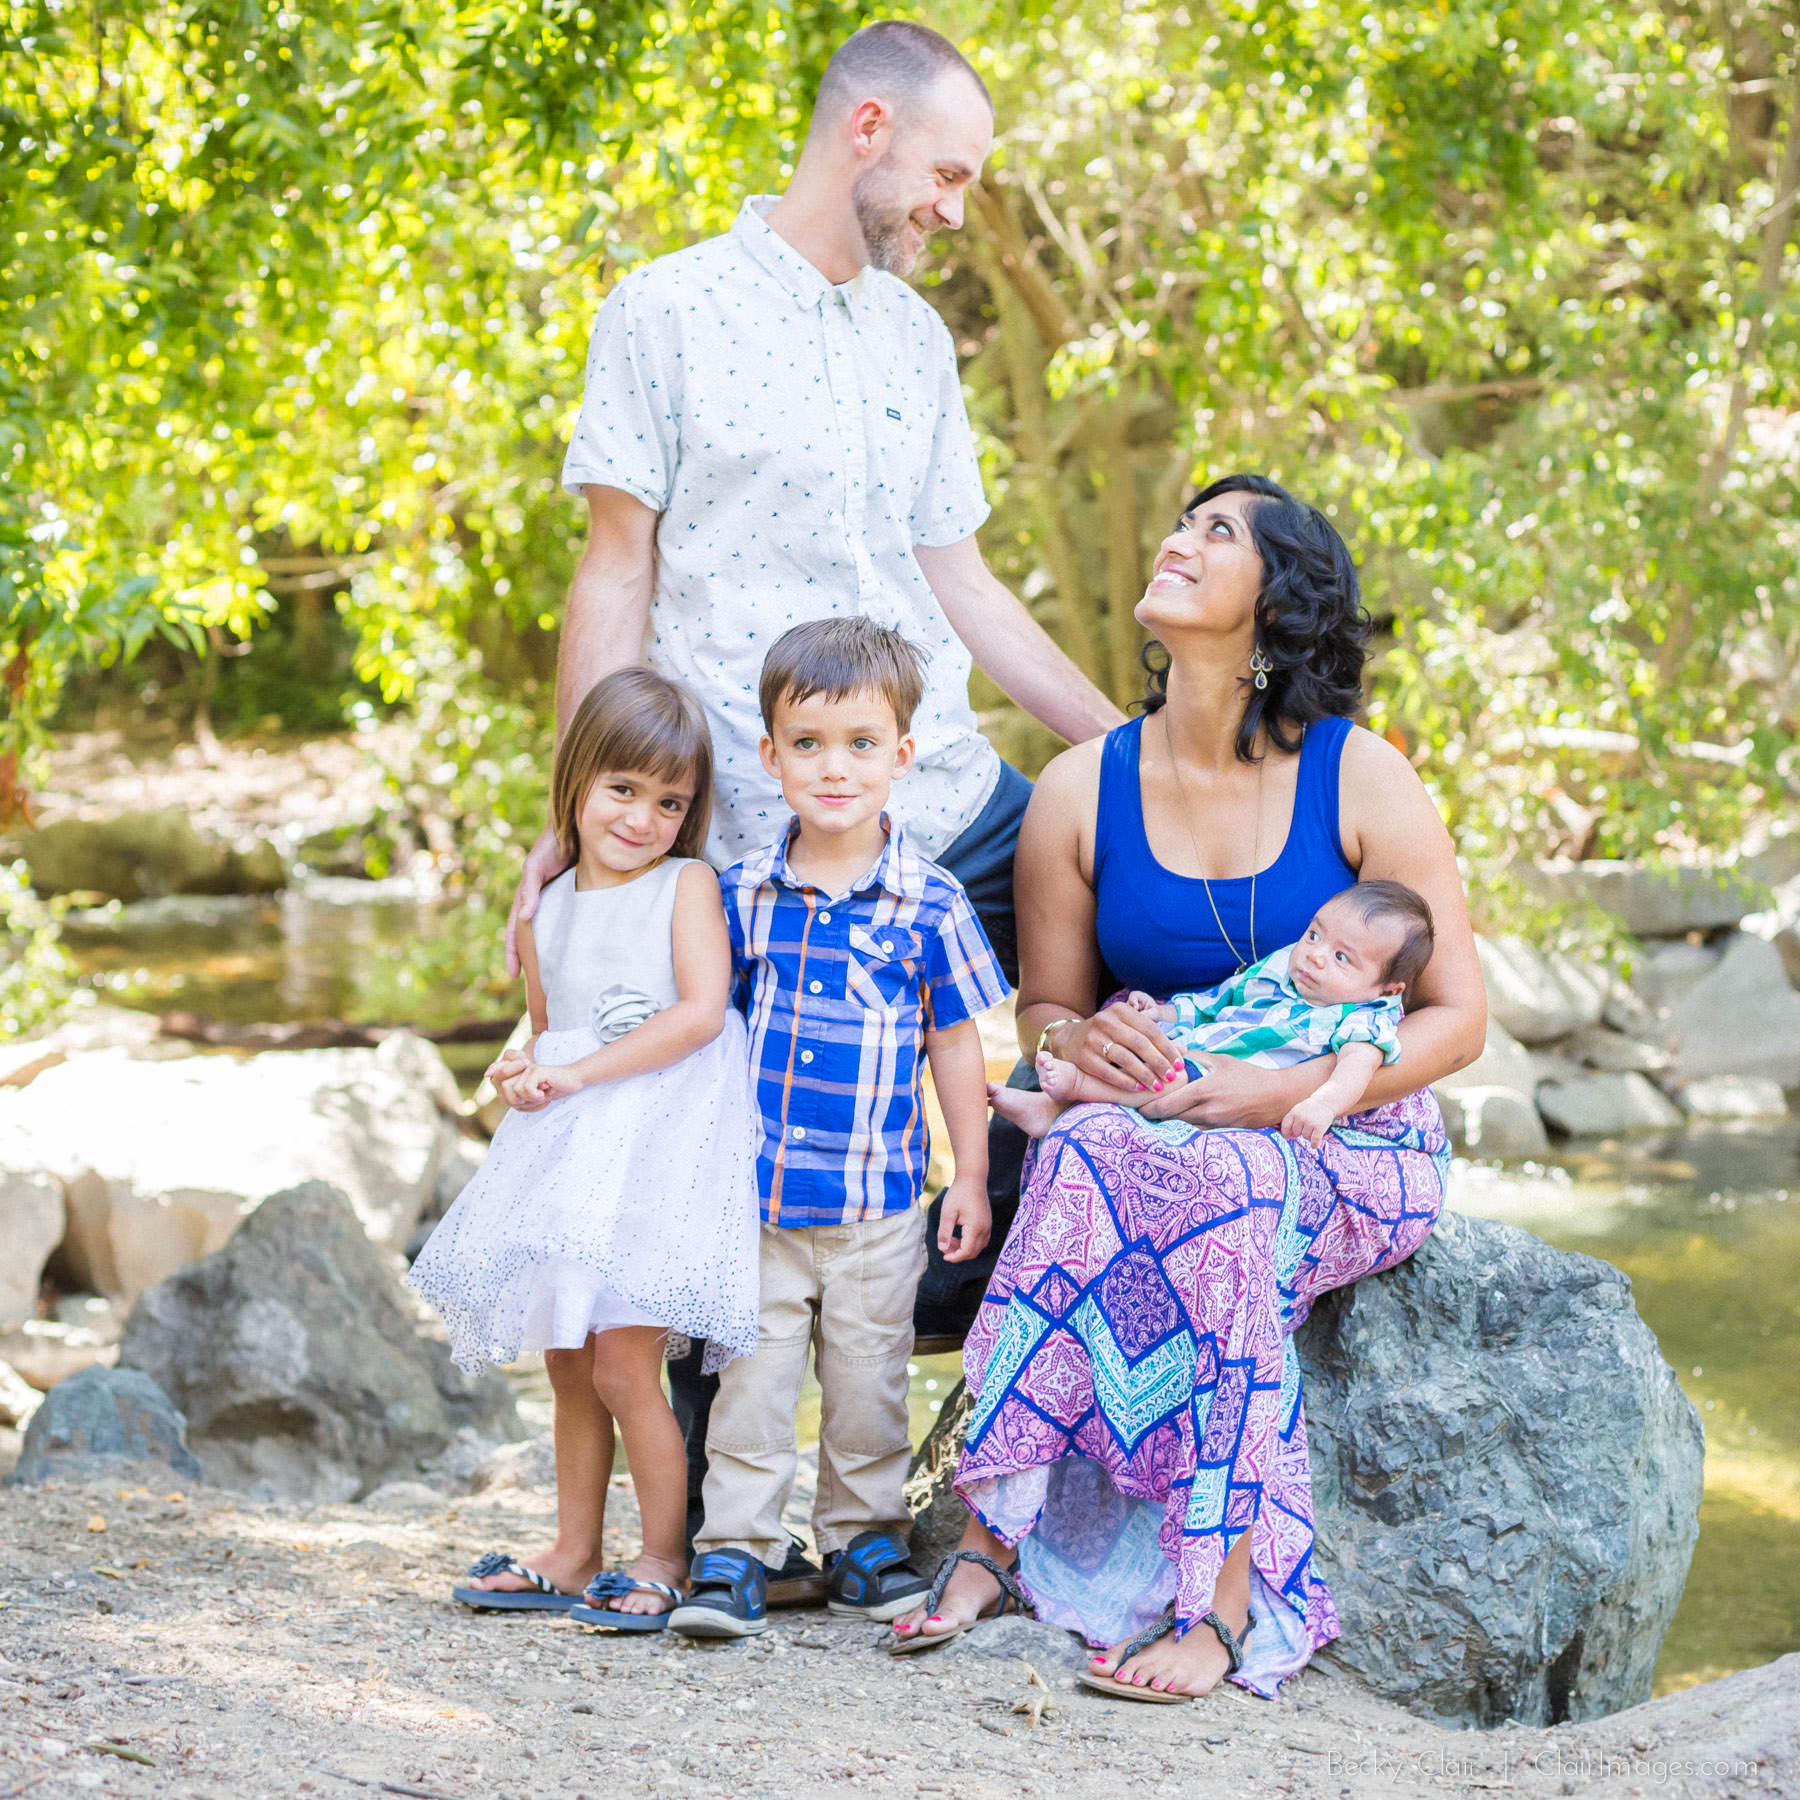 San Luis Obispo Family Portraits - Partridge Family - Clair Images Mini Sessions - Cuesta Park